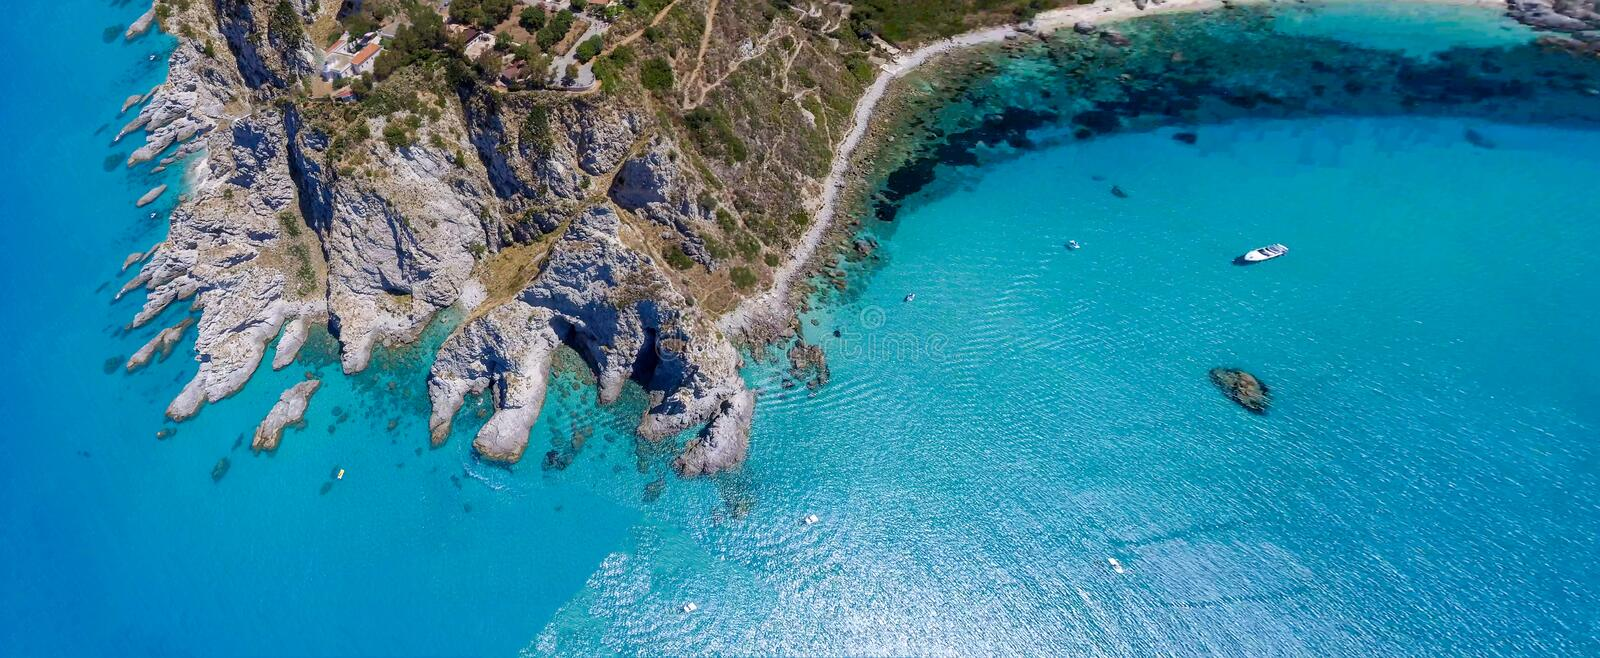 Capo Vaticano, Calabria - Italy. Amazing panoramic overhead aerial view of coastline on a sunny day.  royalty free stock photo